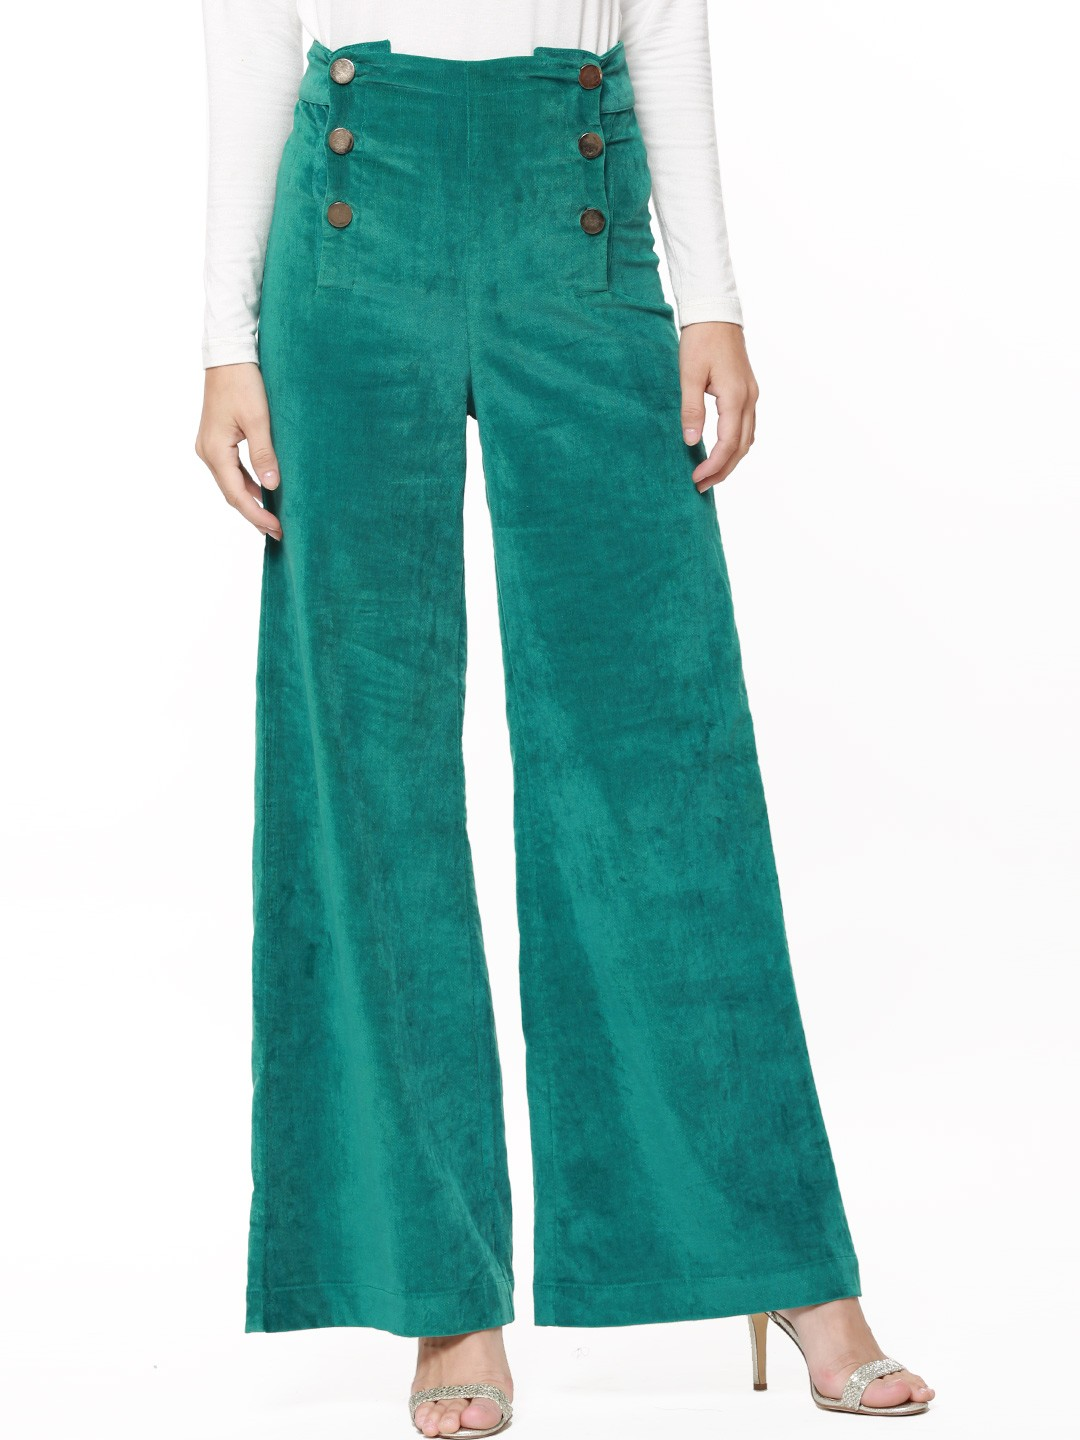 Wide Leg Corduroy Womens Pants ($ - $): 30 of items - Shop Wide Leg Corduroy Womens Pants from ALL your favorite stores & find HUGE SAVINGS up to 80% off Wide Leg Corduroy Womens Pants, including GREAT DEALS like Elly B by OLIAN Maternity Women's Wide Leg Contrast Corduroy Pants ($).